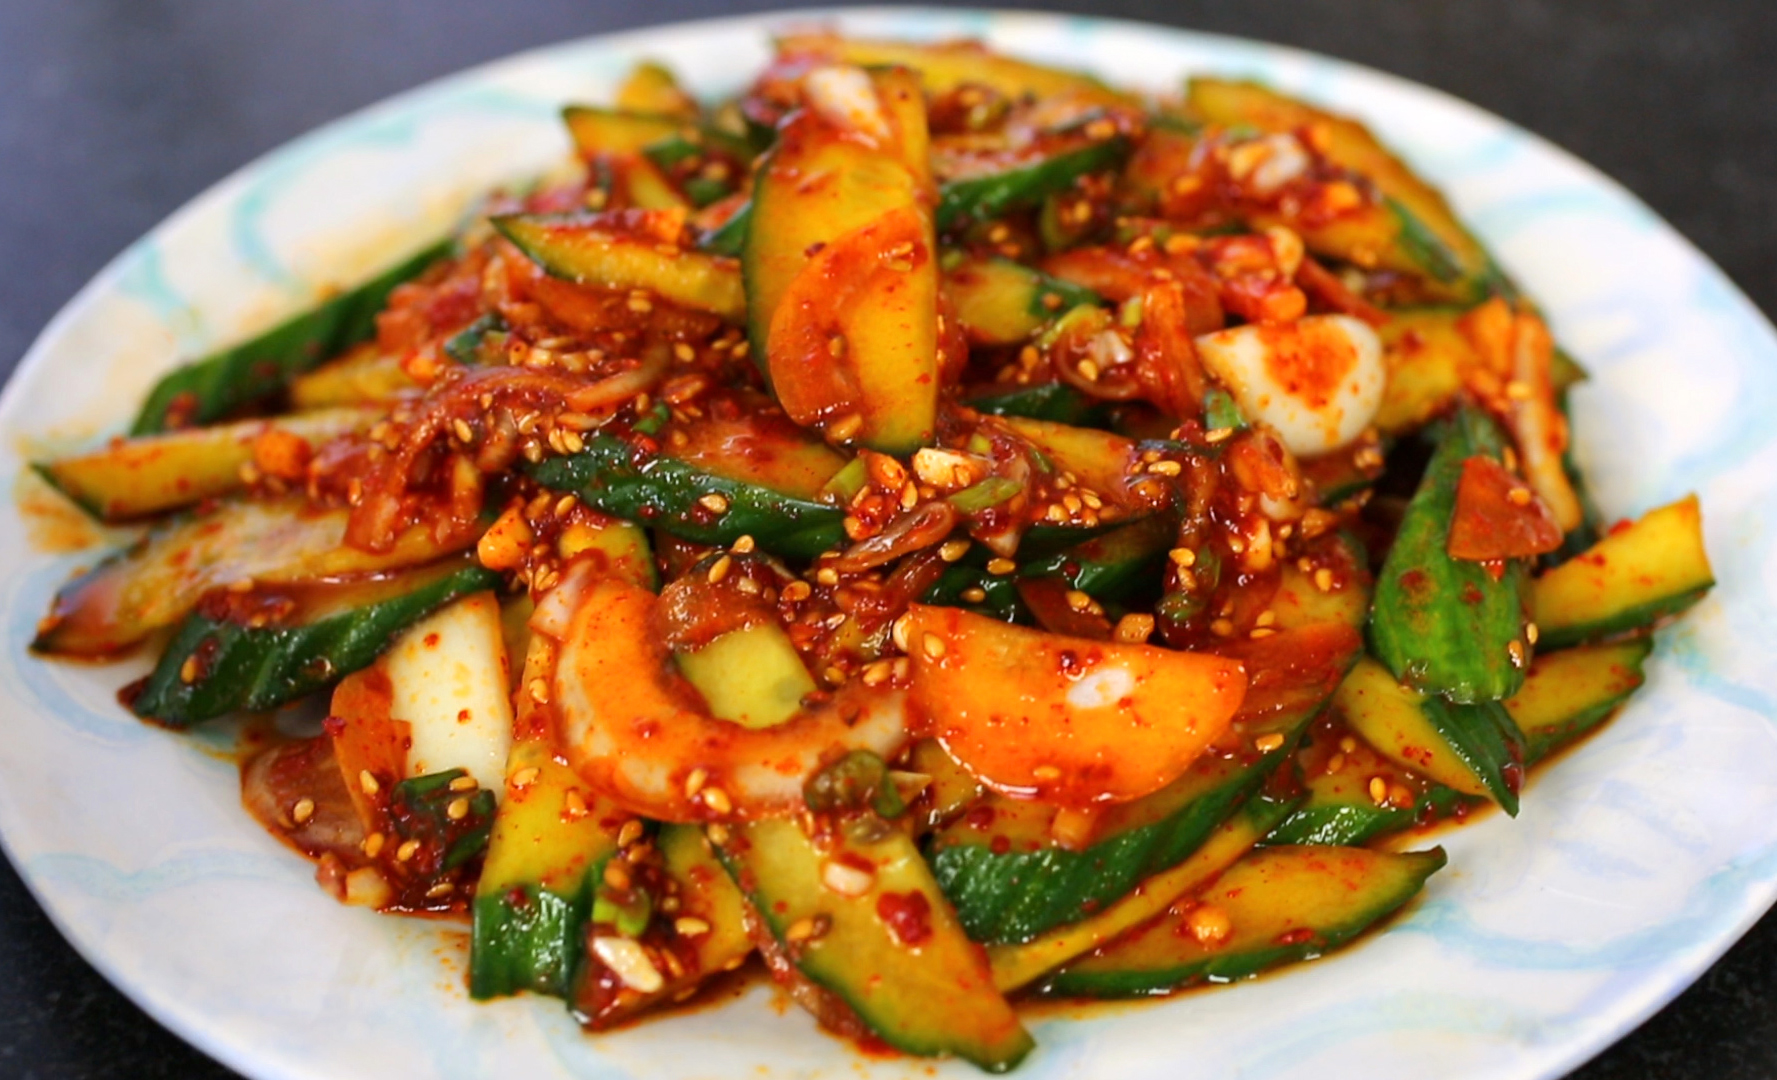 Green Family Stores >> Spicy cucumber side dish recipe - Maangchi.com